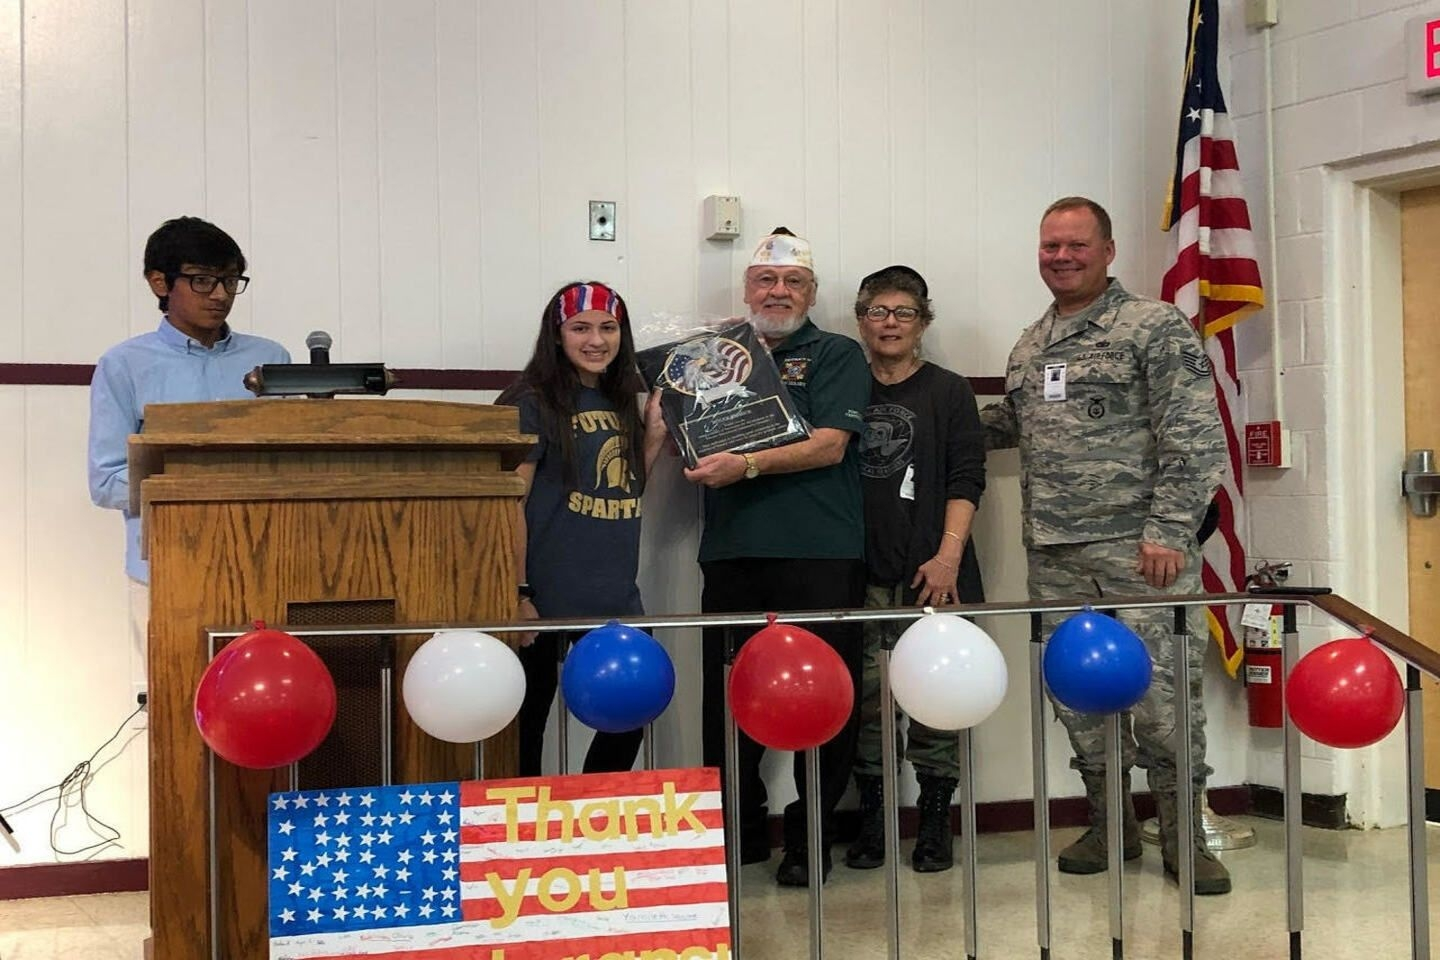 Quartermaster Emmick receives plaque for years of maintaining a close link between the VFW and VECC